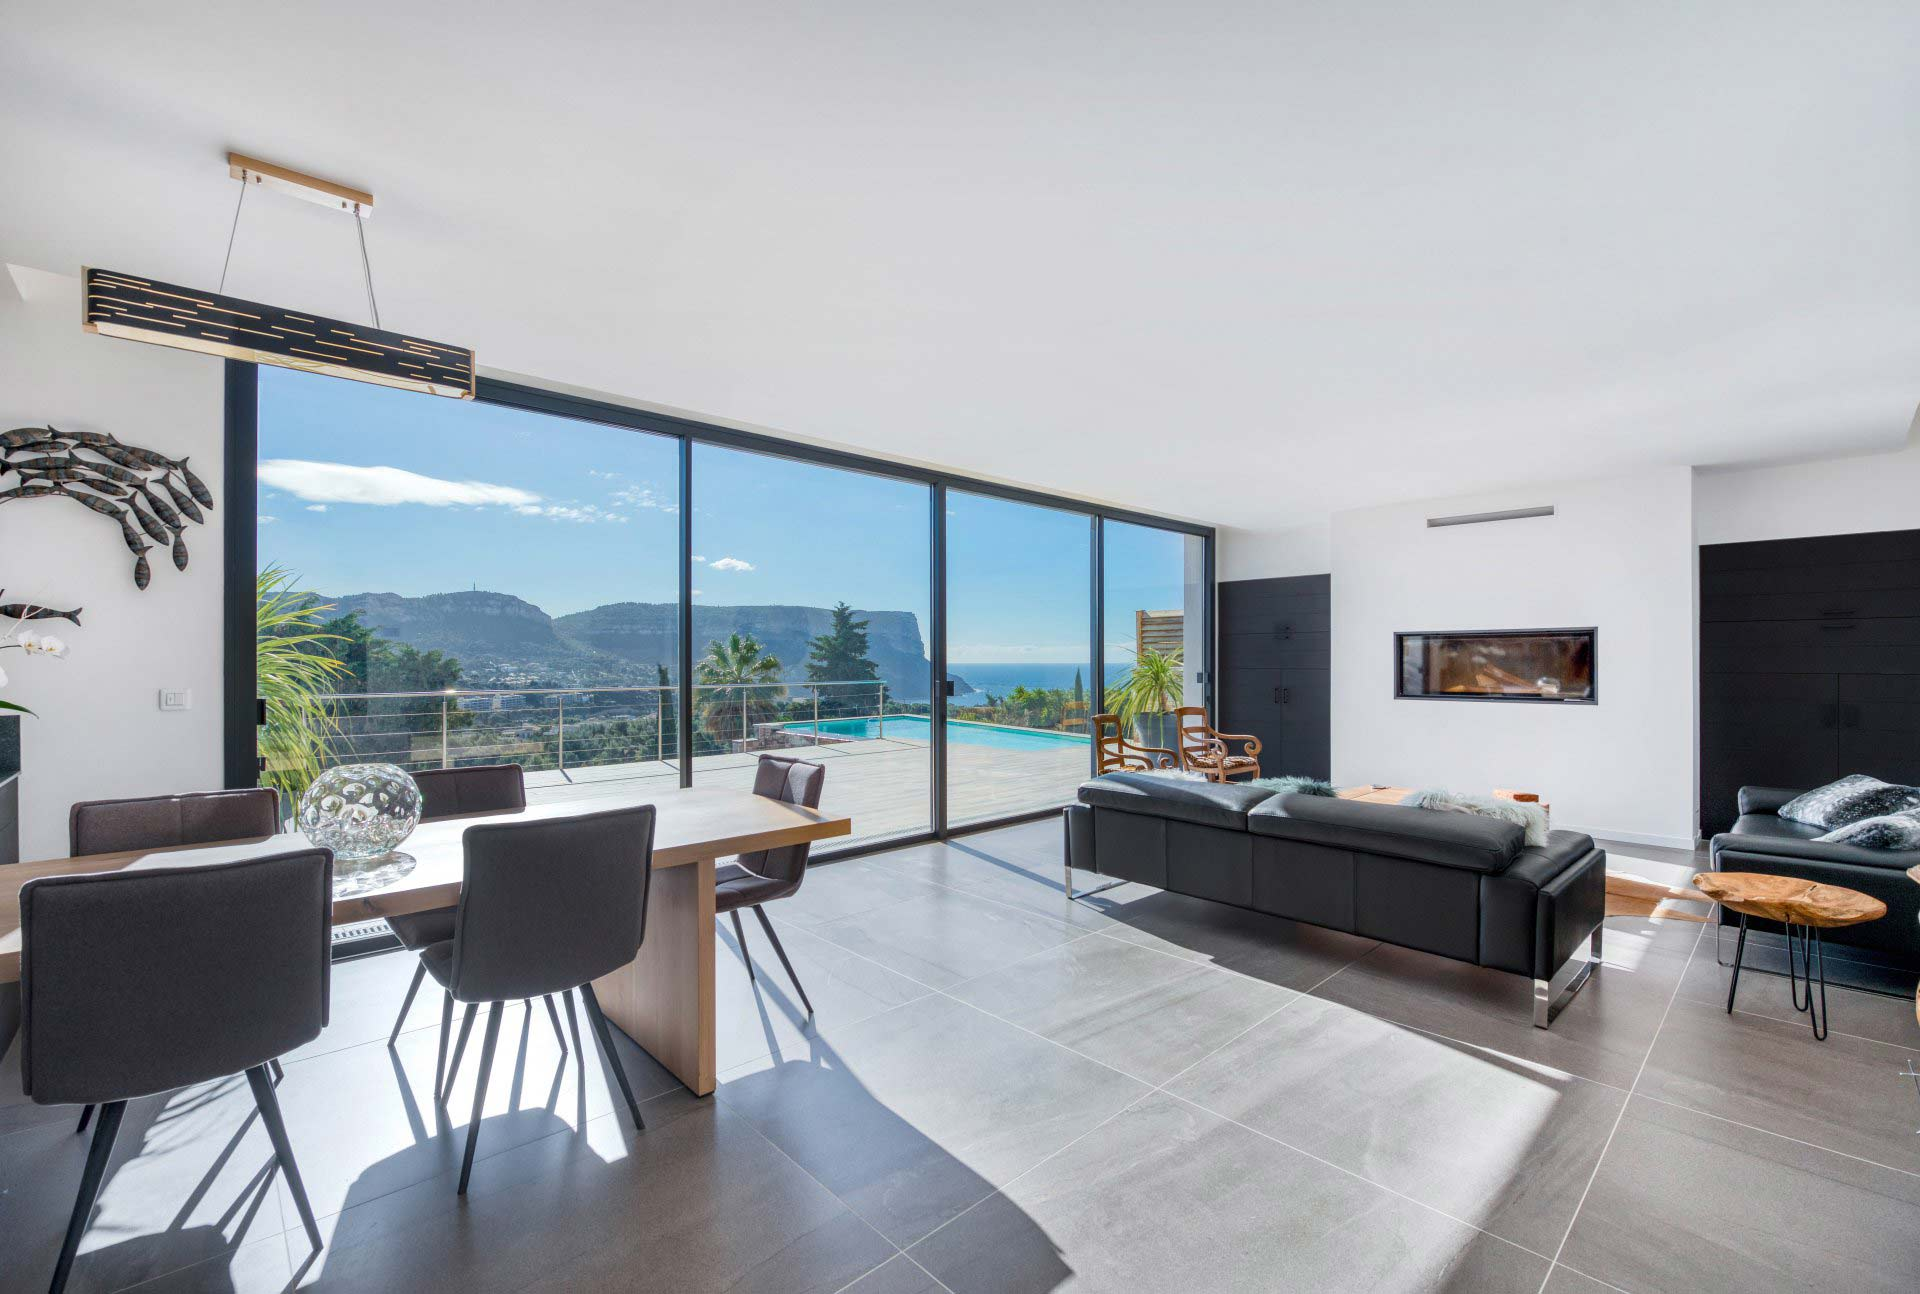 Cassis - France - House , 7 rooms, 4 bedrooms - Slideshow Picture 1